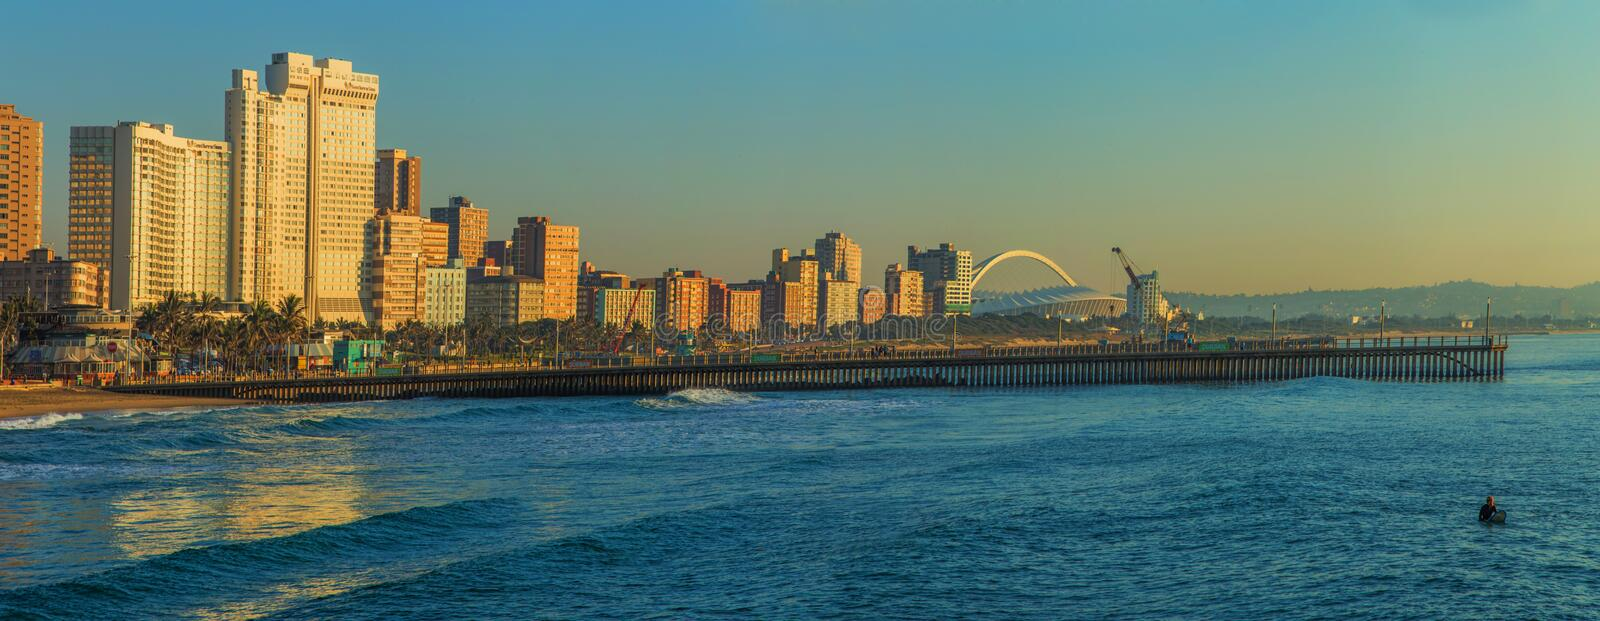 Plage Front South Africa de Durban photo stock